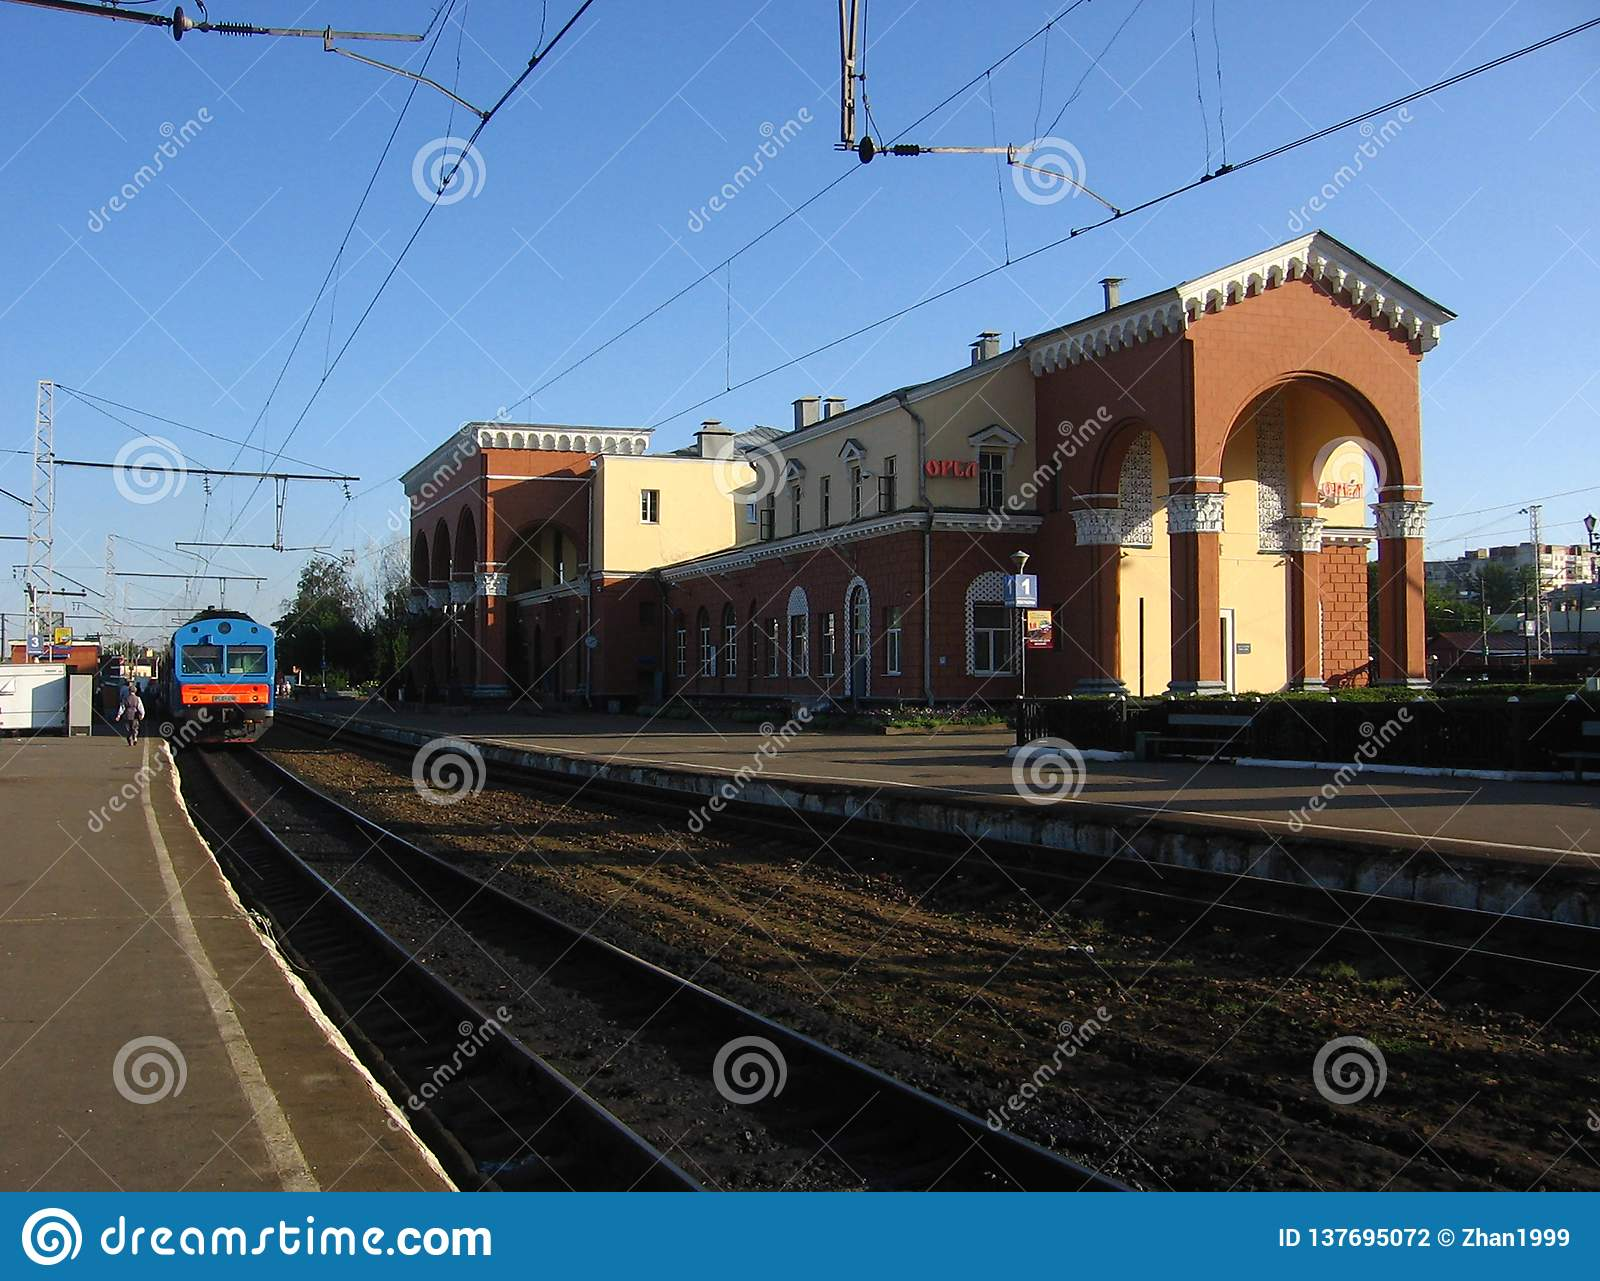 Railway station of Oryol city, Russia